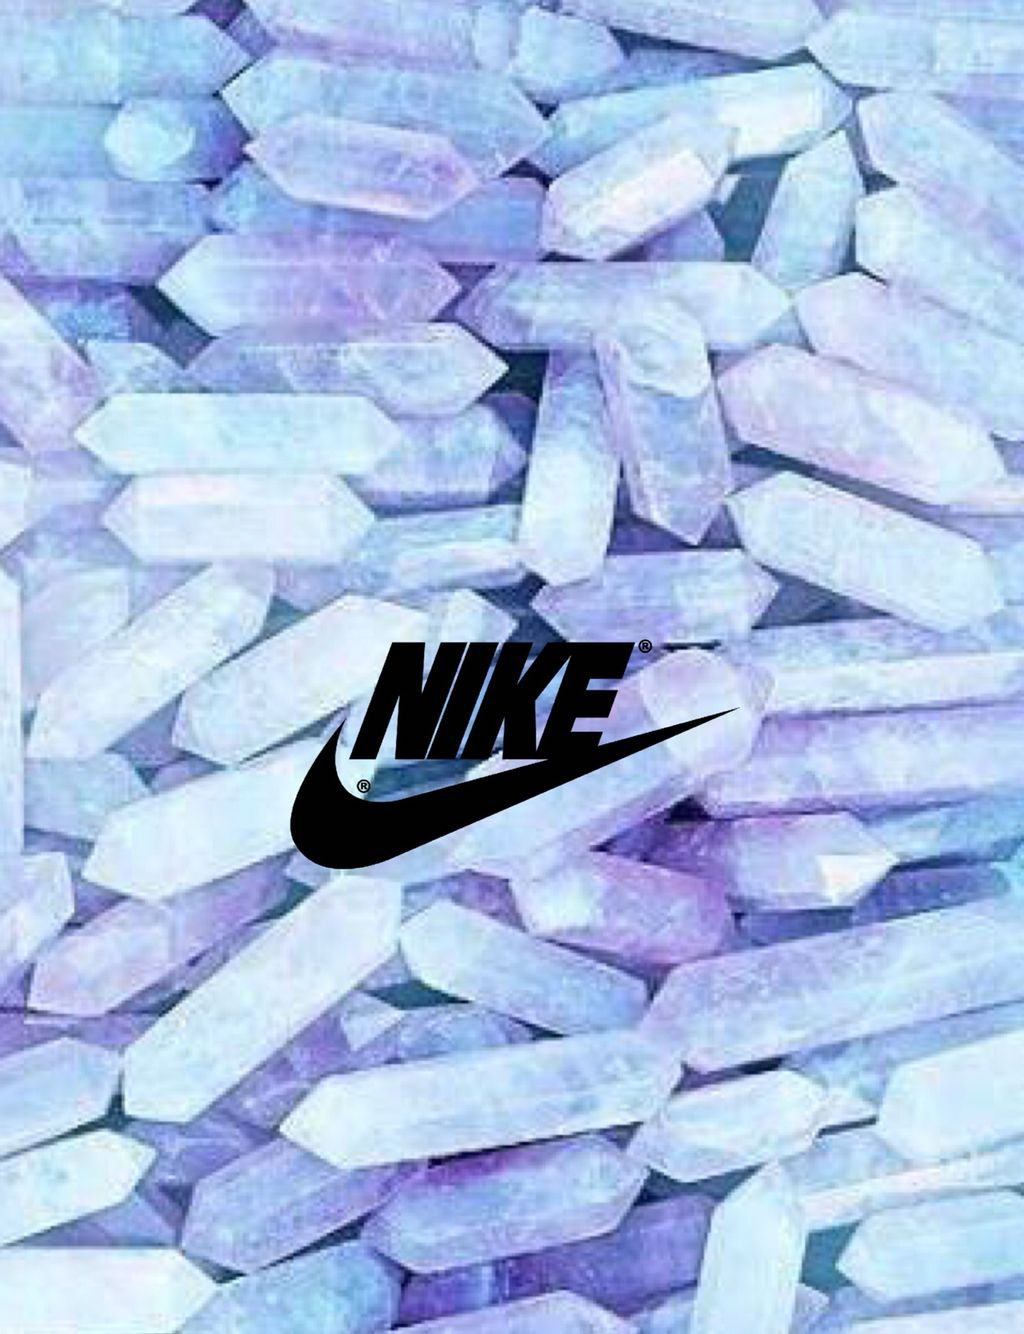 tumblr nike aesthetic wallpaper | backrounds | pinterest